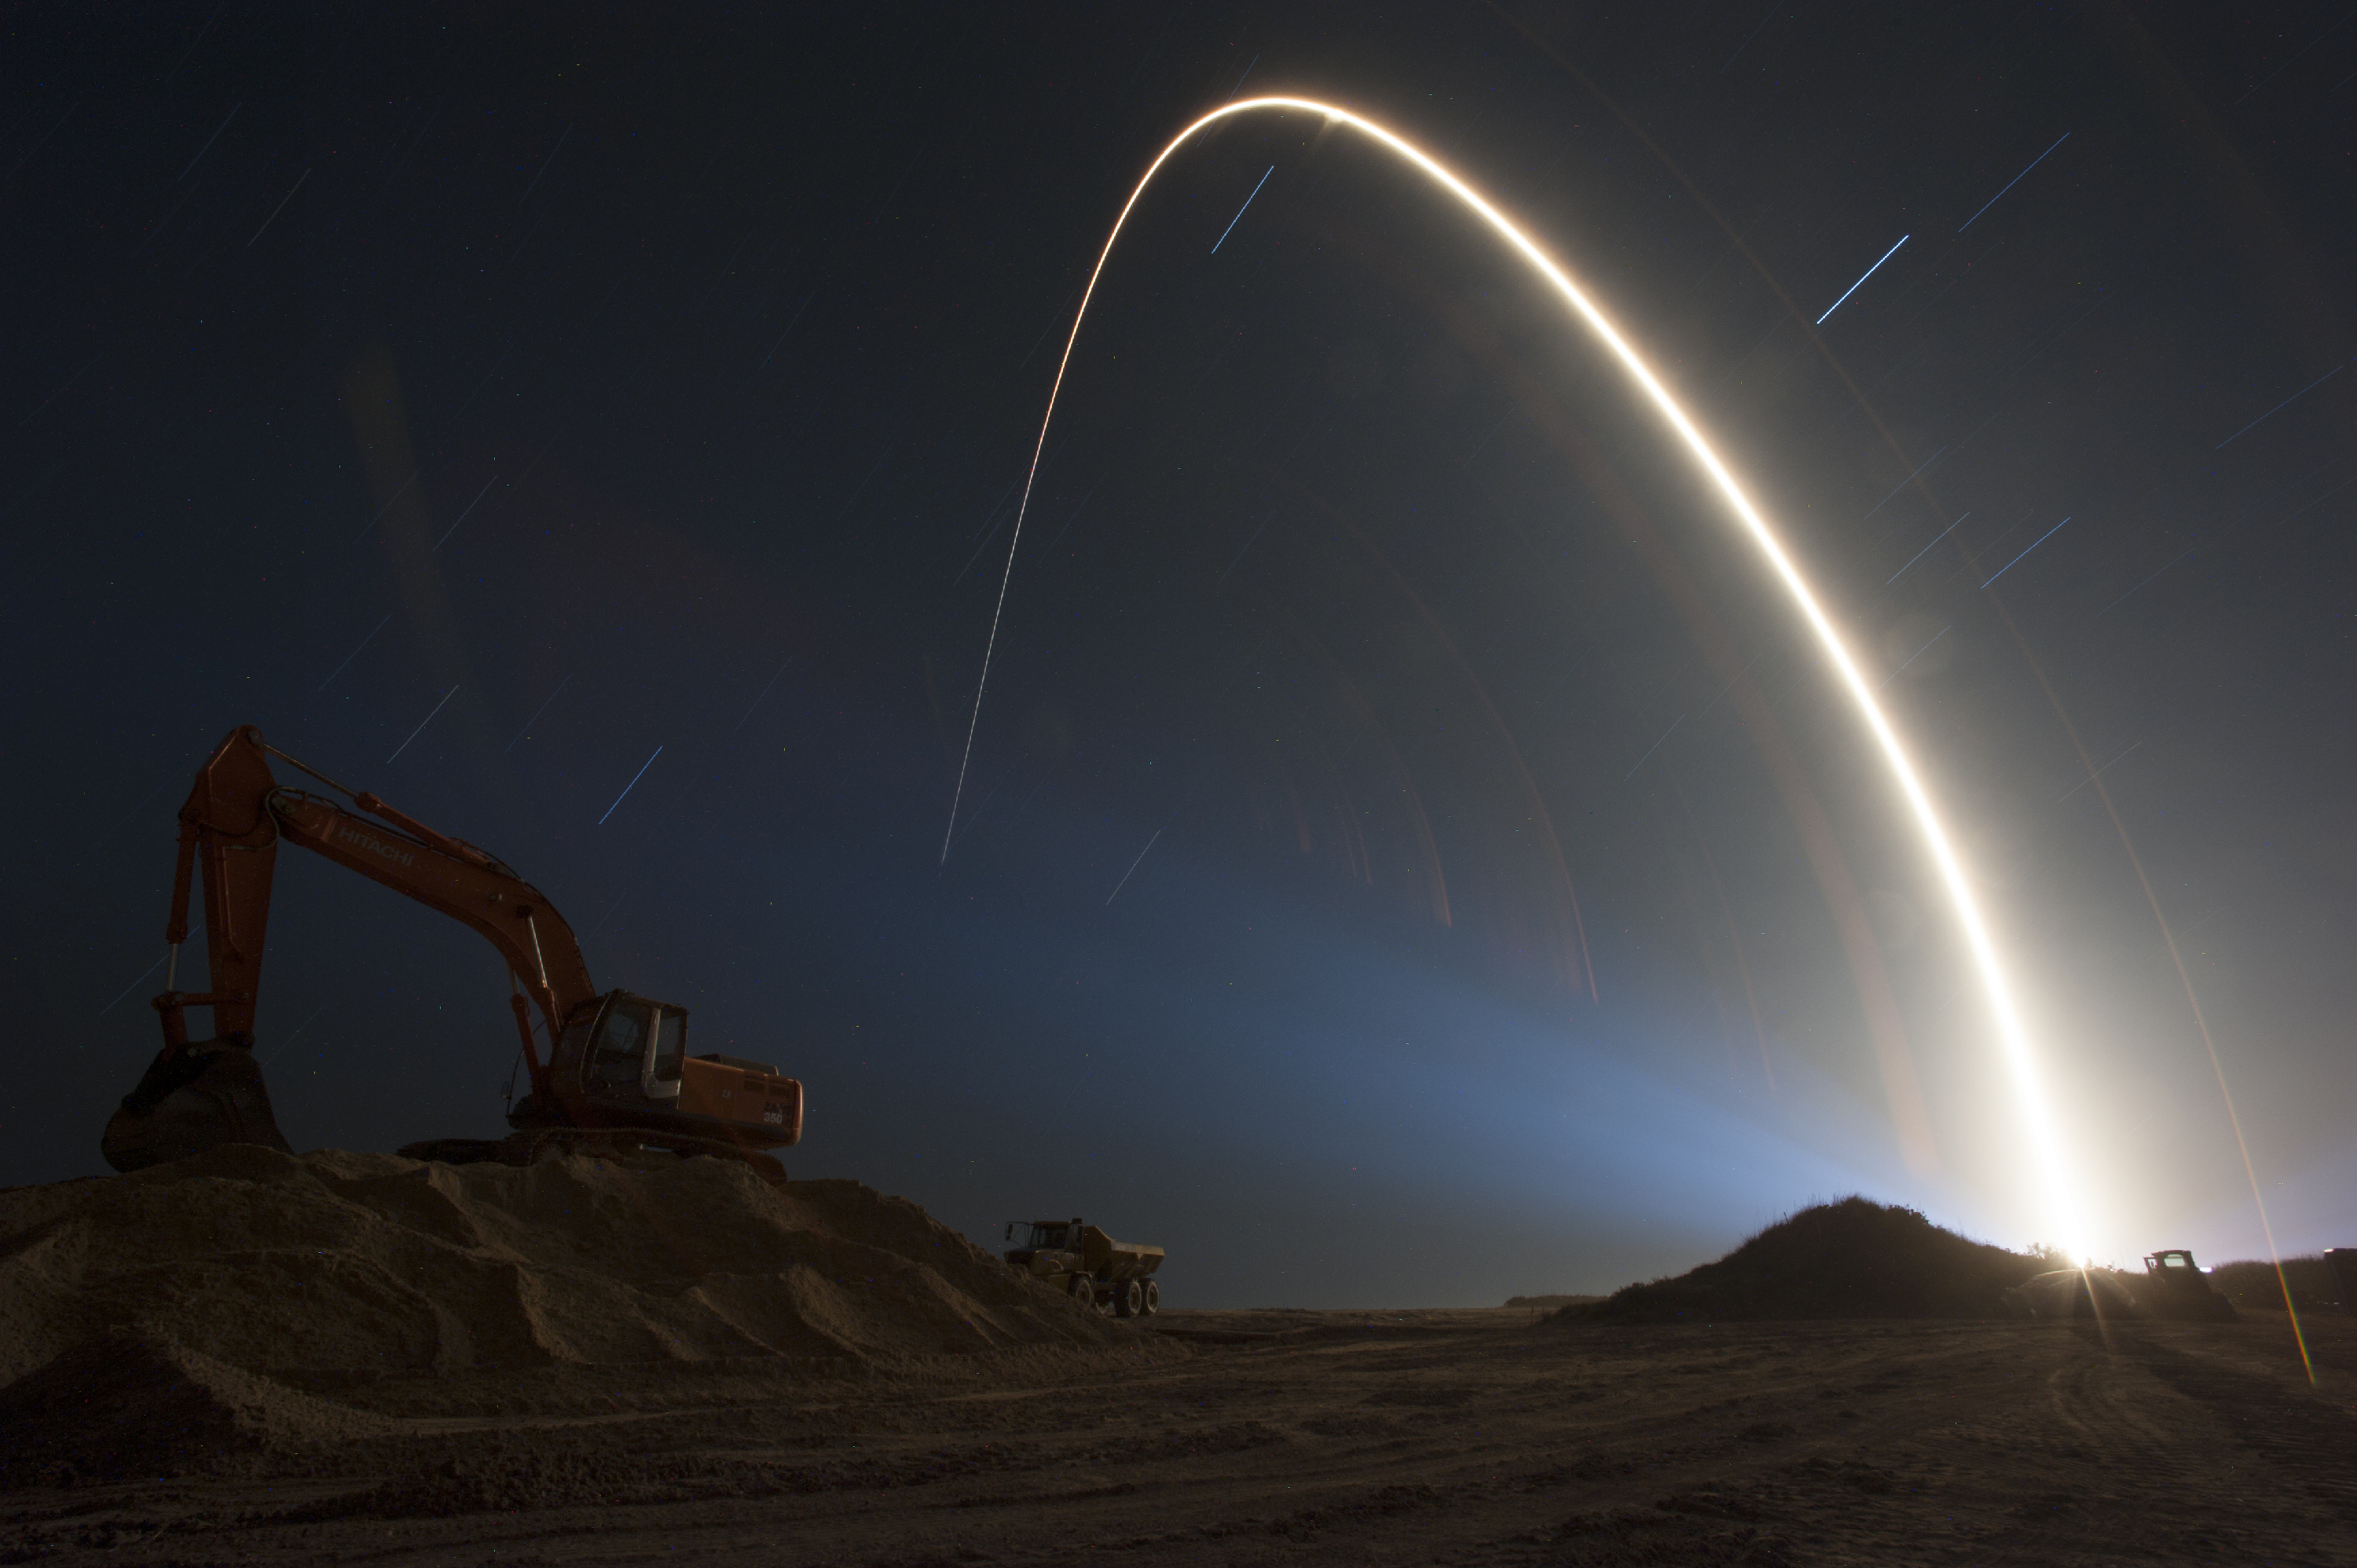 Stunning NASA Photo Shows Night Rocket Launch into Space